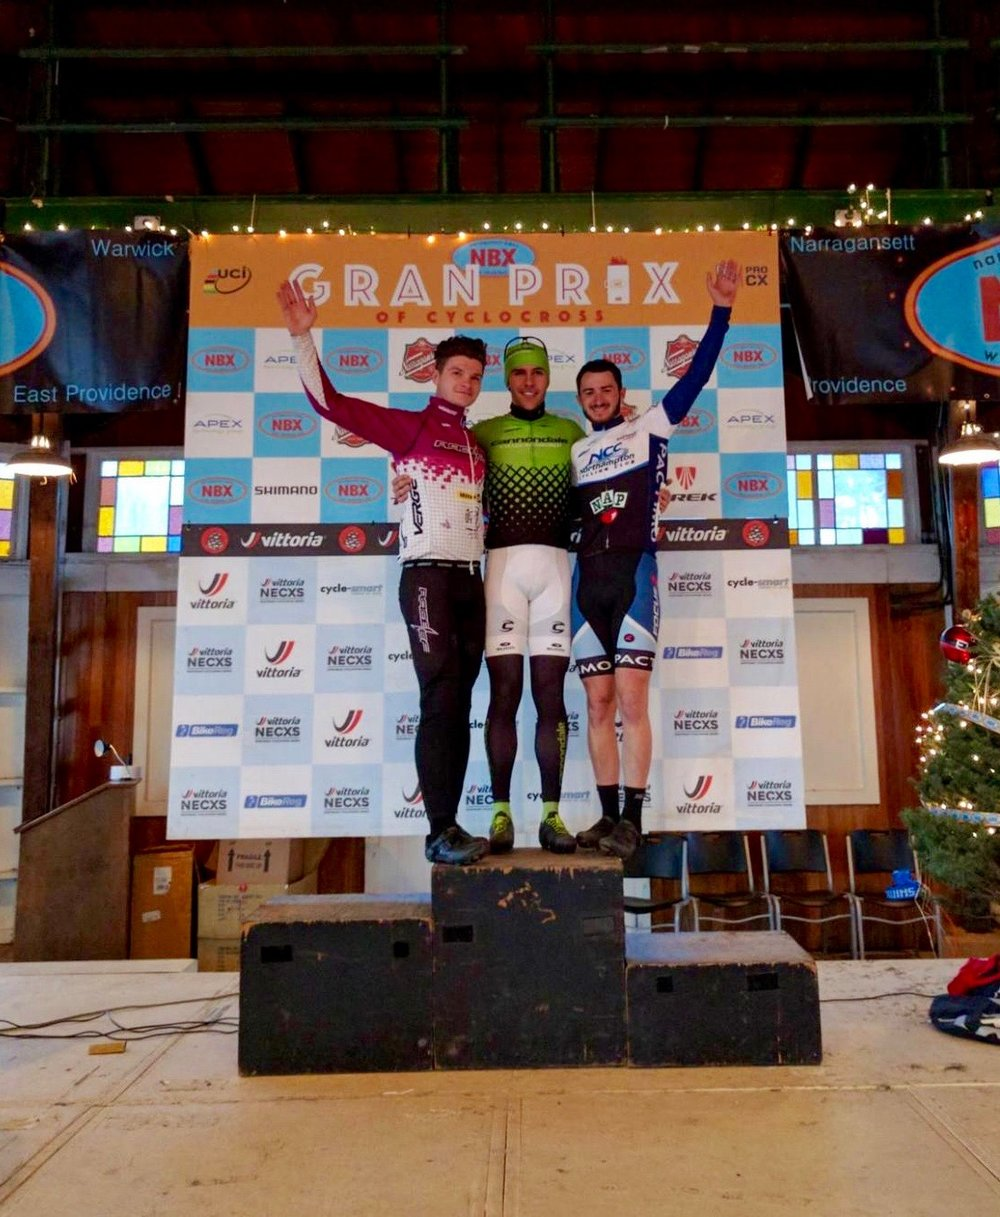 Trent Blackburn (right) was the third U23 finisher at the Dec. 3 Gran Prix of Cyclocross. He finished 13th among all riders in the elite category.